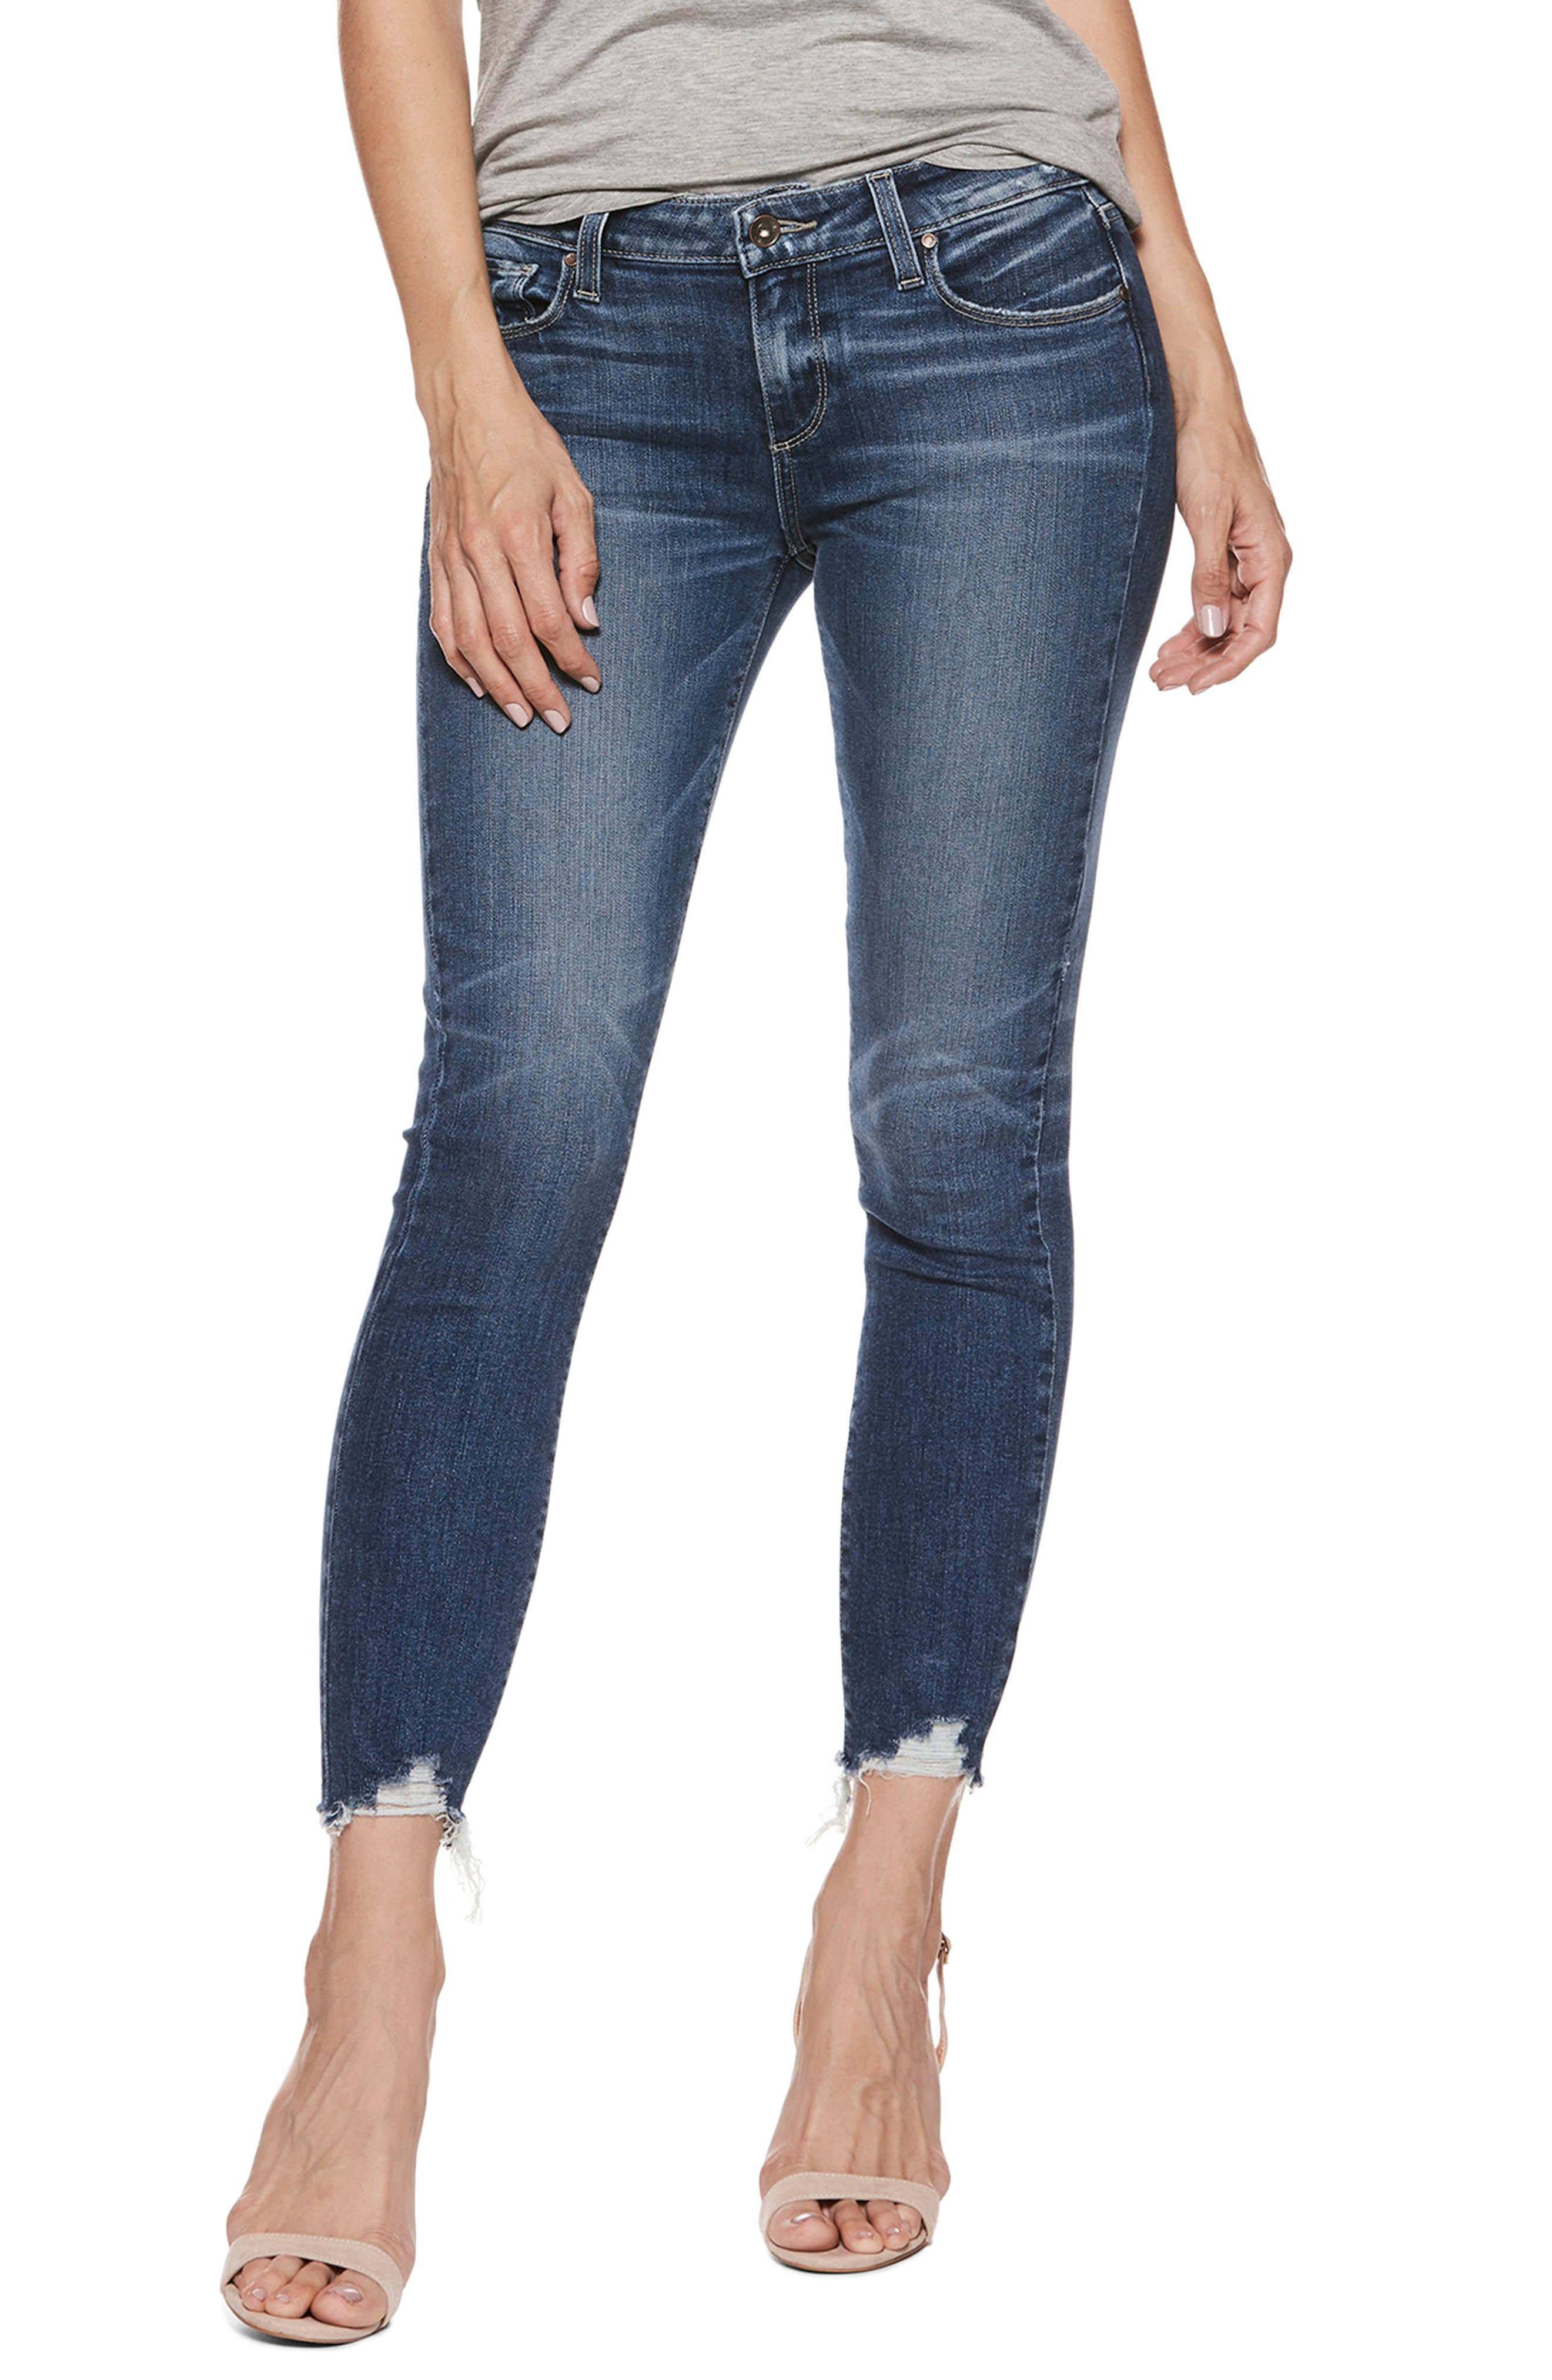 Transcend Vintage - Verdugo Ankle Skinny Jeans,                             Alternate thumbnail 3, color,                             Malibu Super Distressed